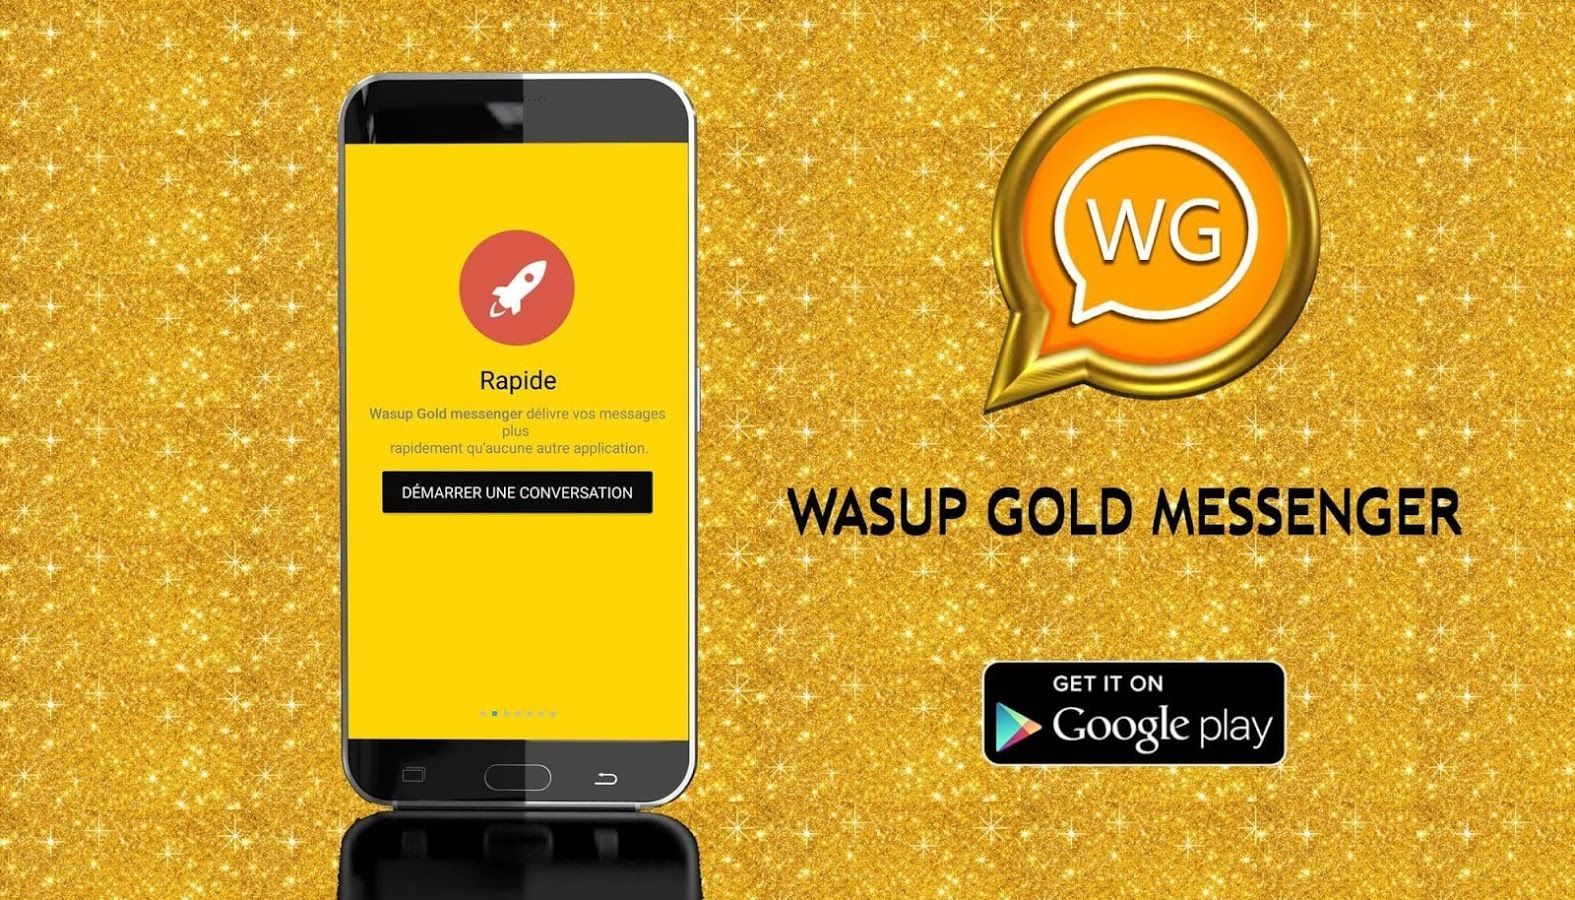 whatsapp plus apk download for android 4.4.2